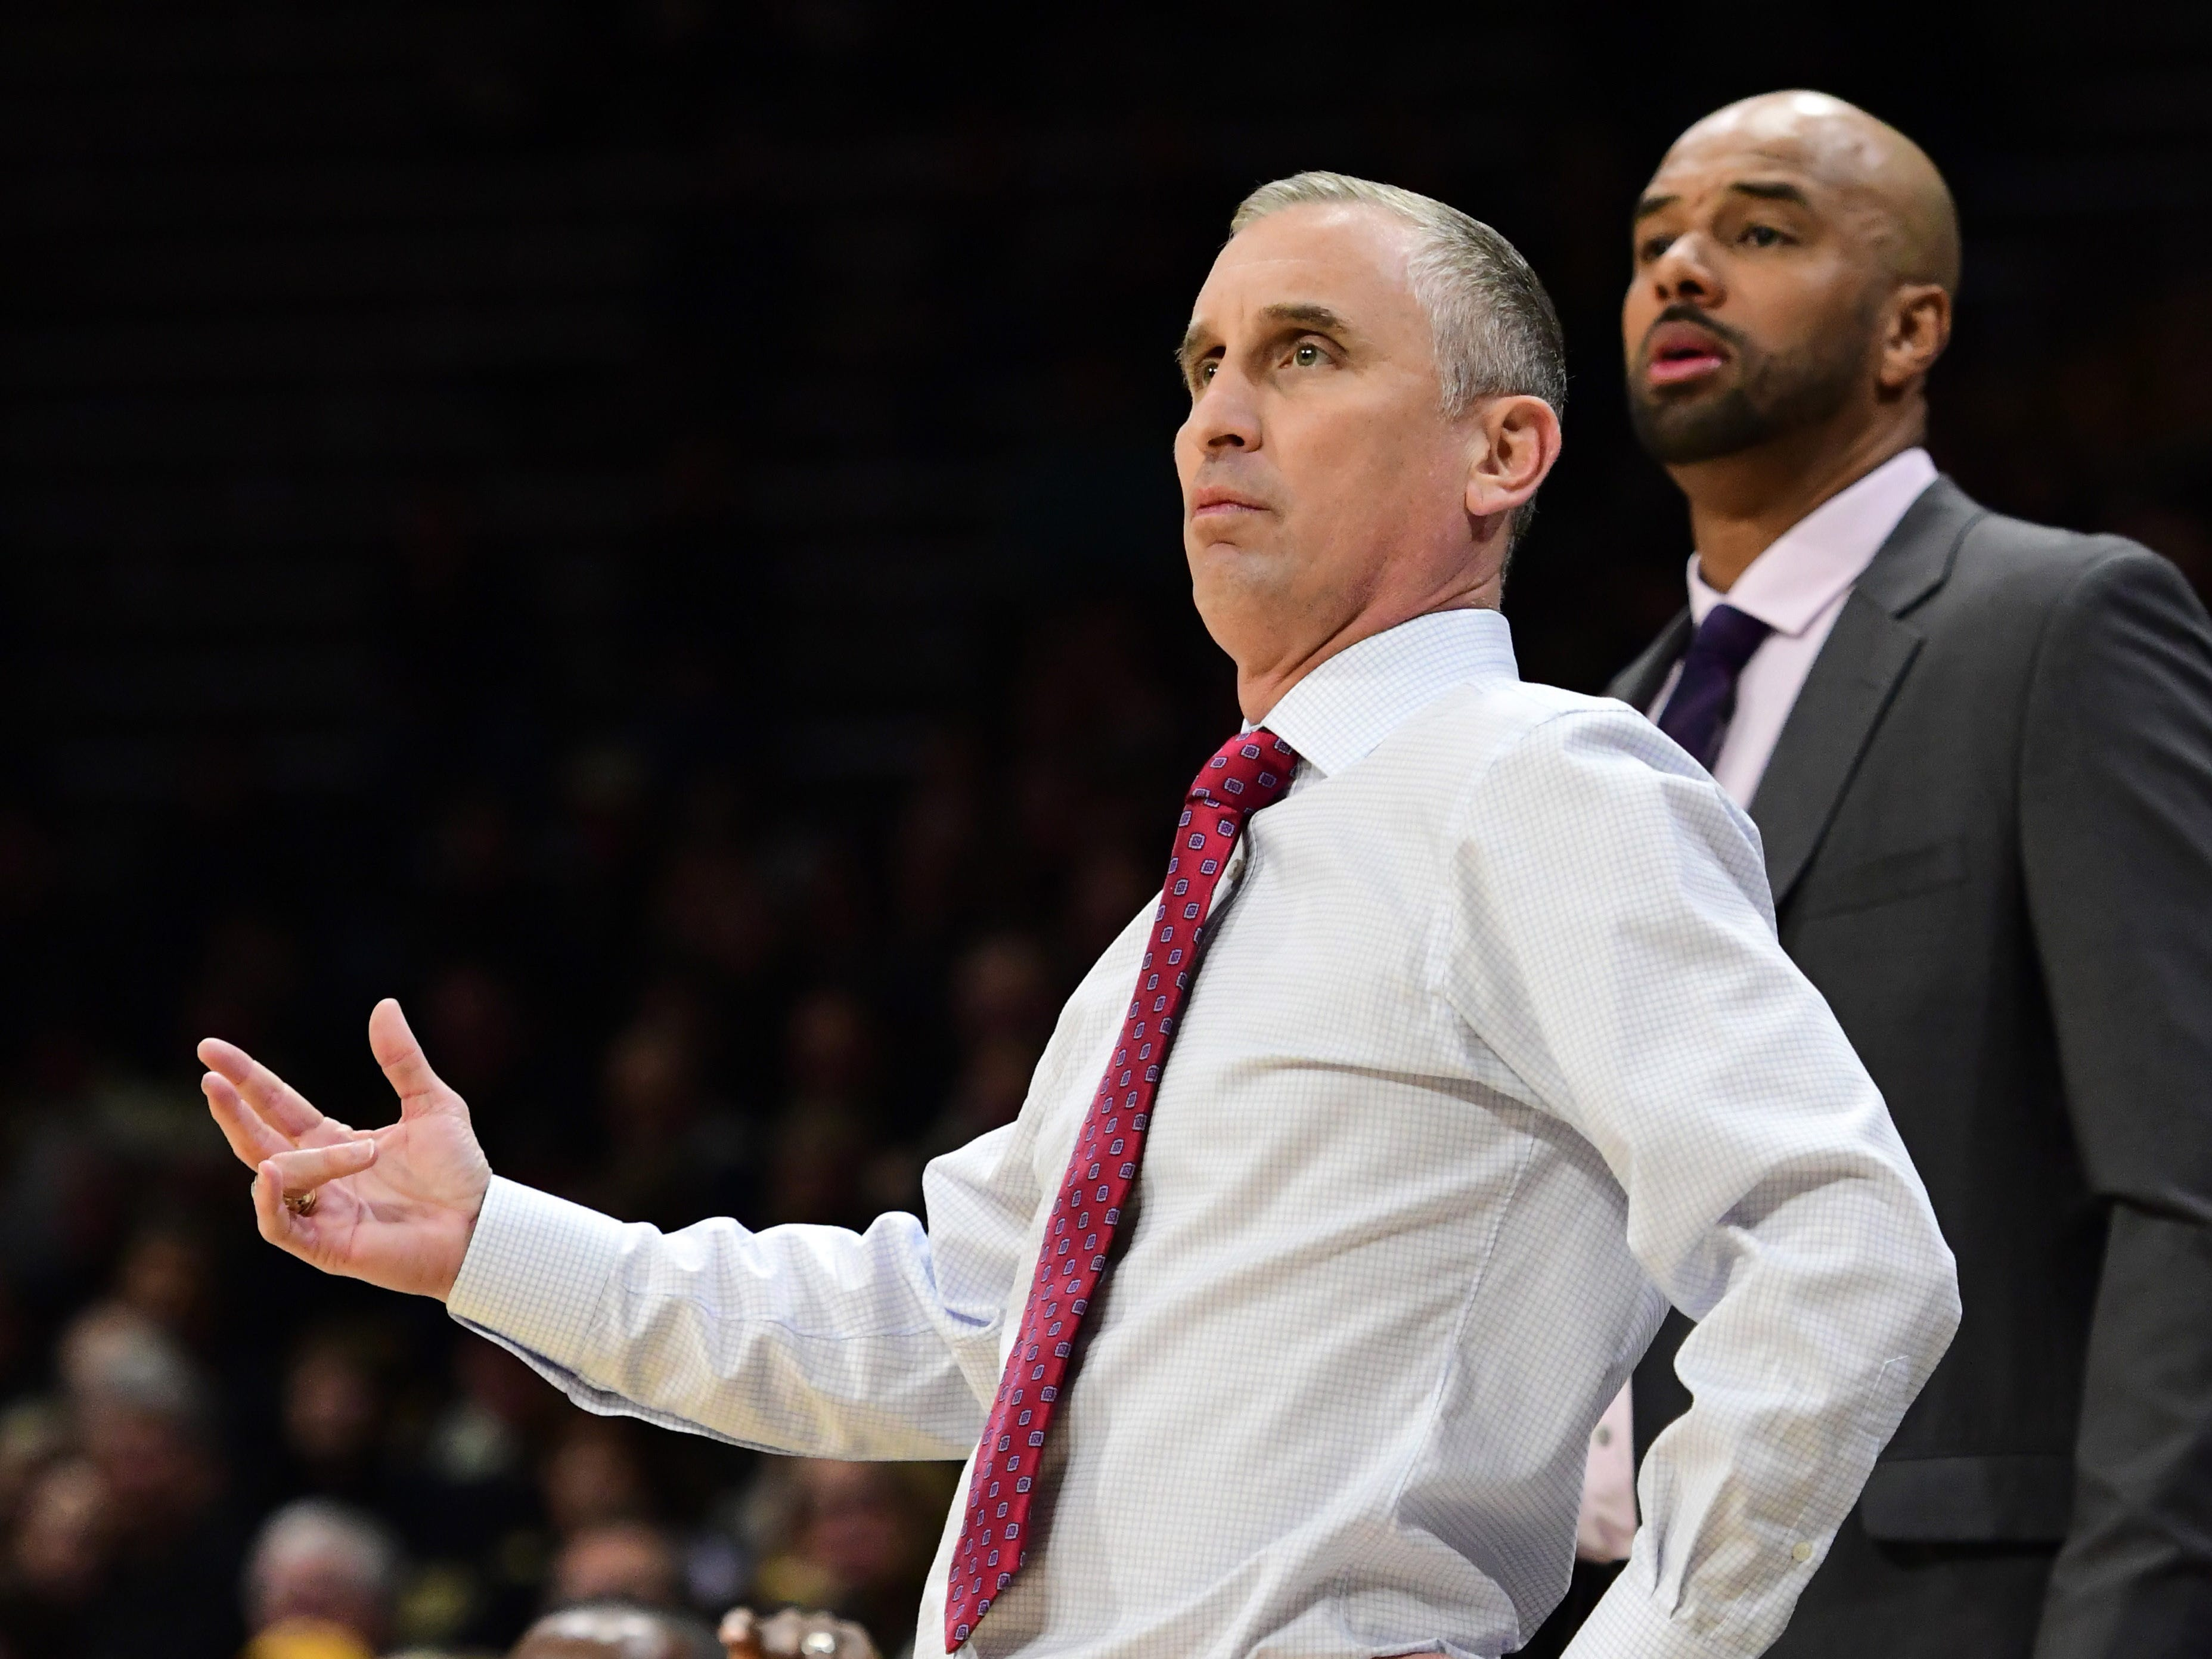 Feb 13, 2019; Boulder, CO, USA; Arizona State Sun Devils head coach Bobby Hurley during the first half against the Colorado Buffaloes at the CU Events Center. Mandatory Credit: Ron Chenoy-USA TODAY Sports